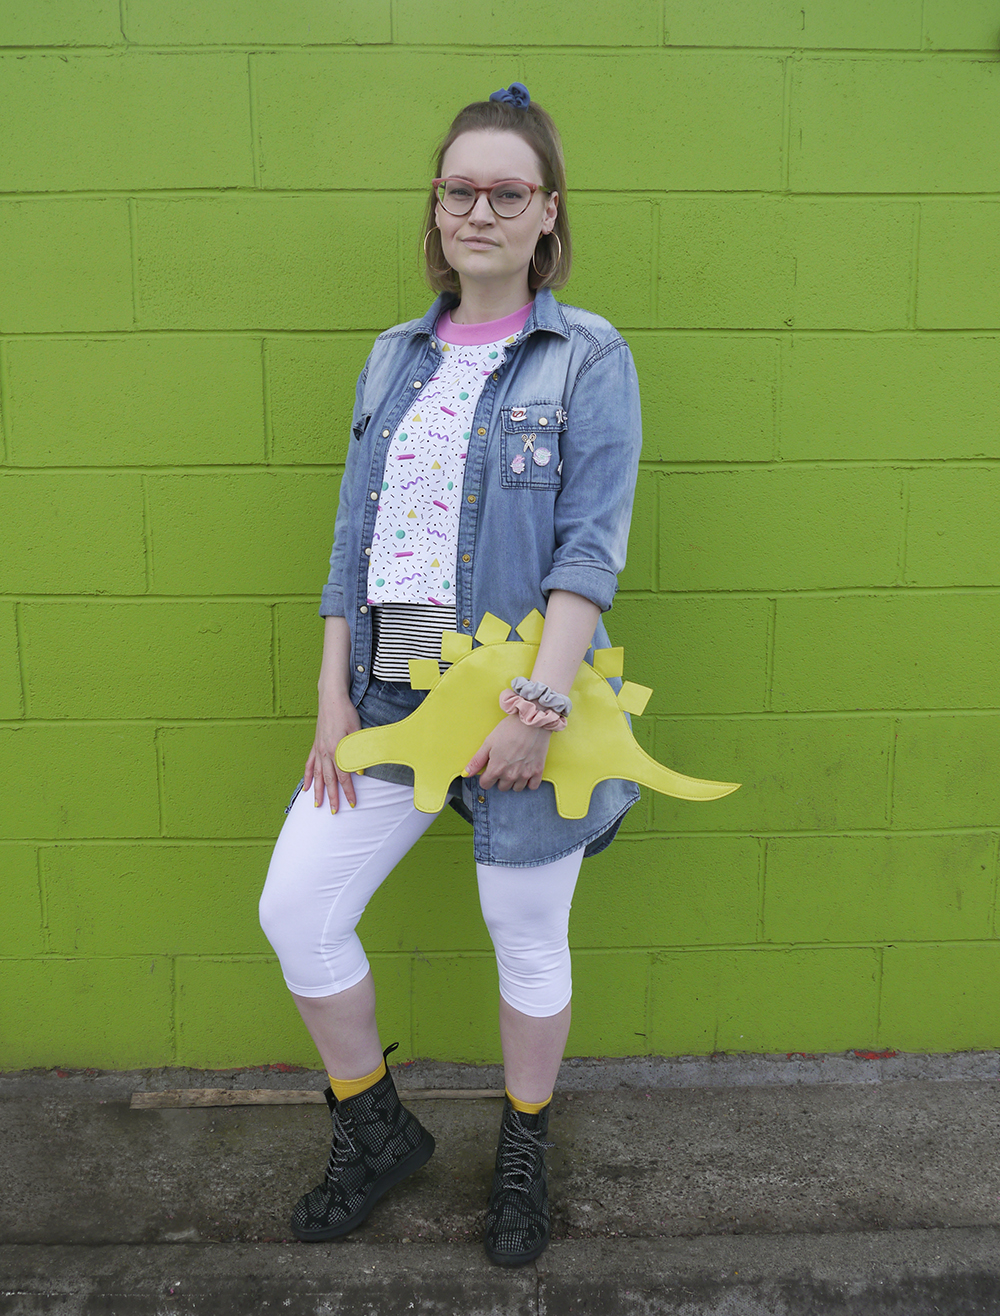 90's Nickelodeon Clarissa Explains It All style with blogger wardrobe conversations